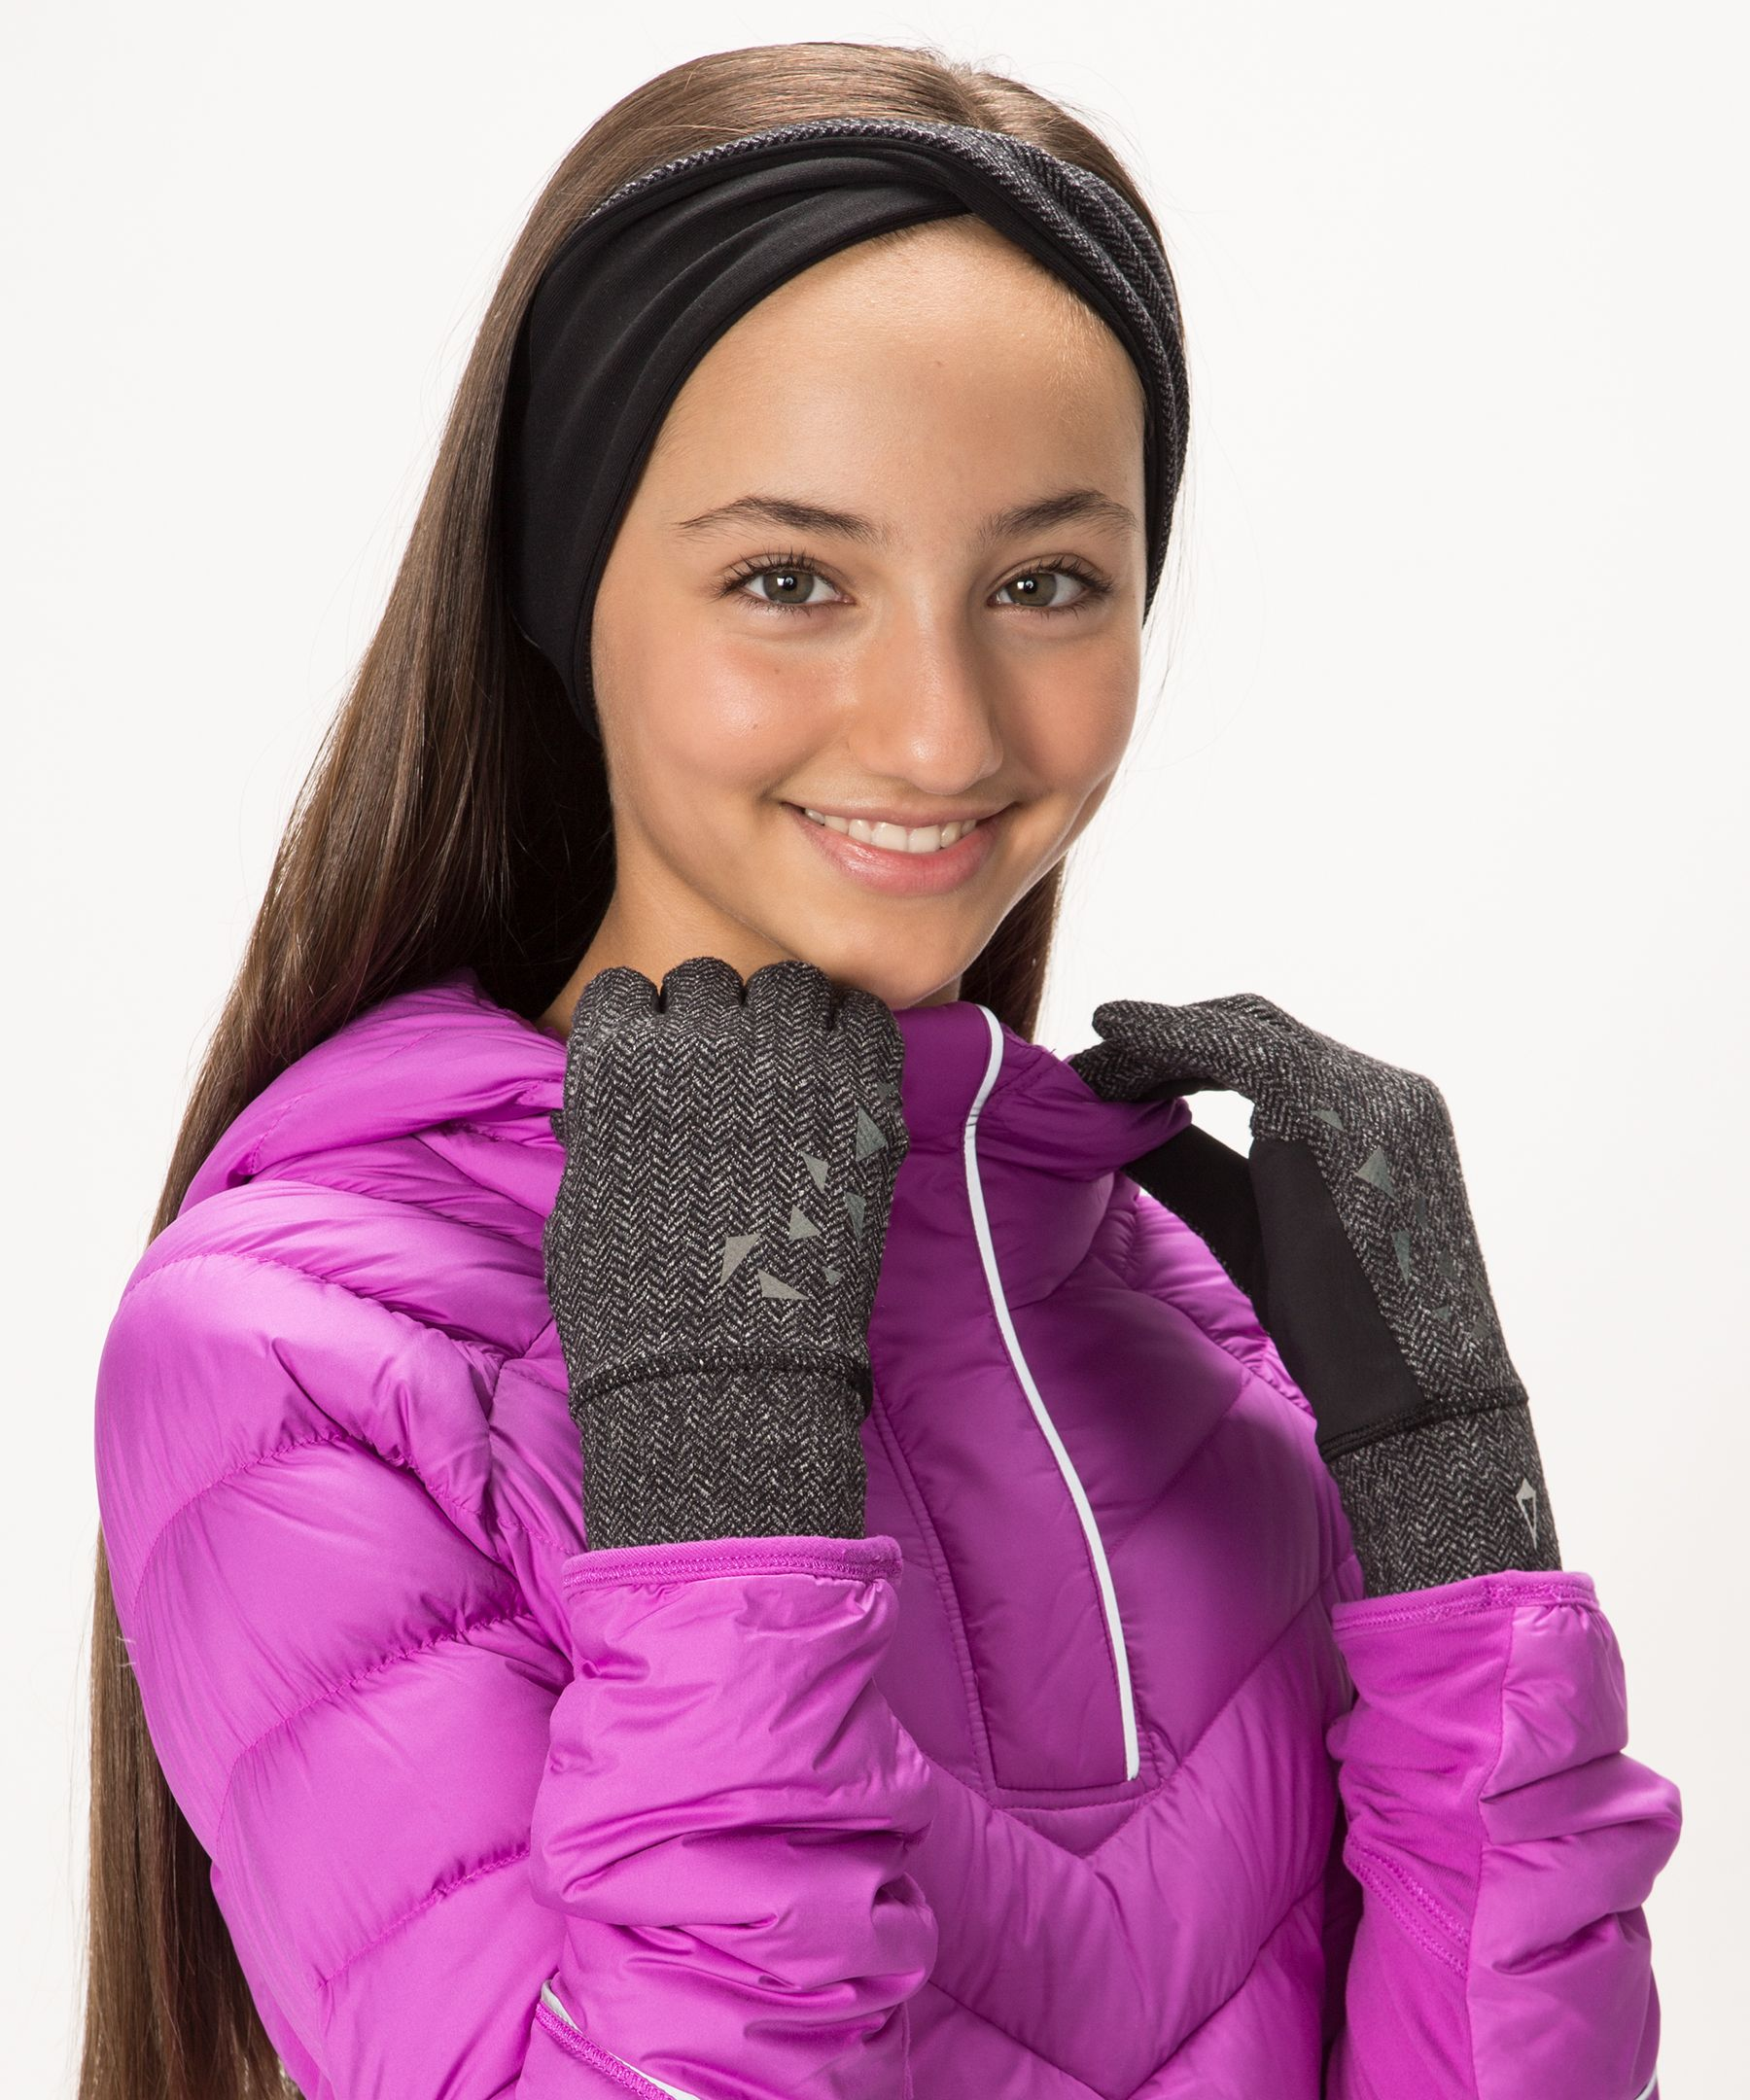 glove girl From age range to position, justballglovescom provides the best information on sizing your next baseball glove or softball glove.